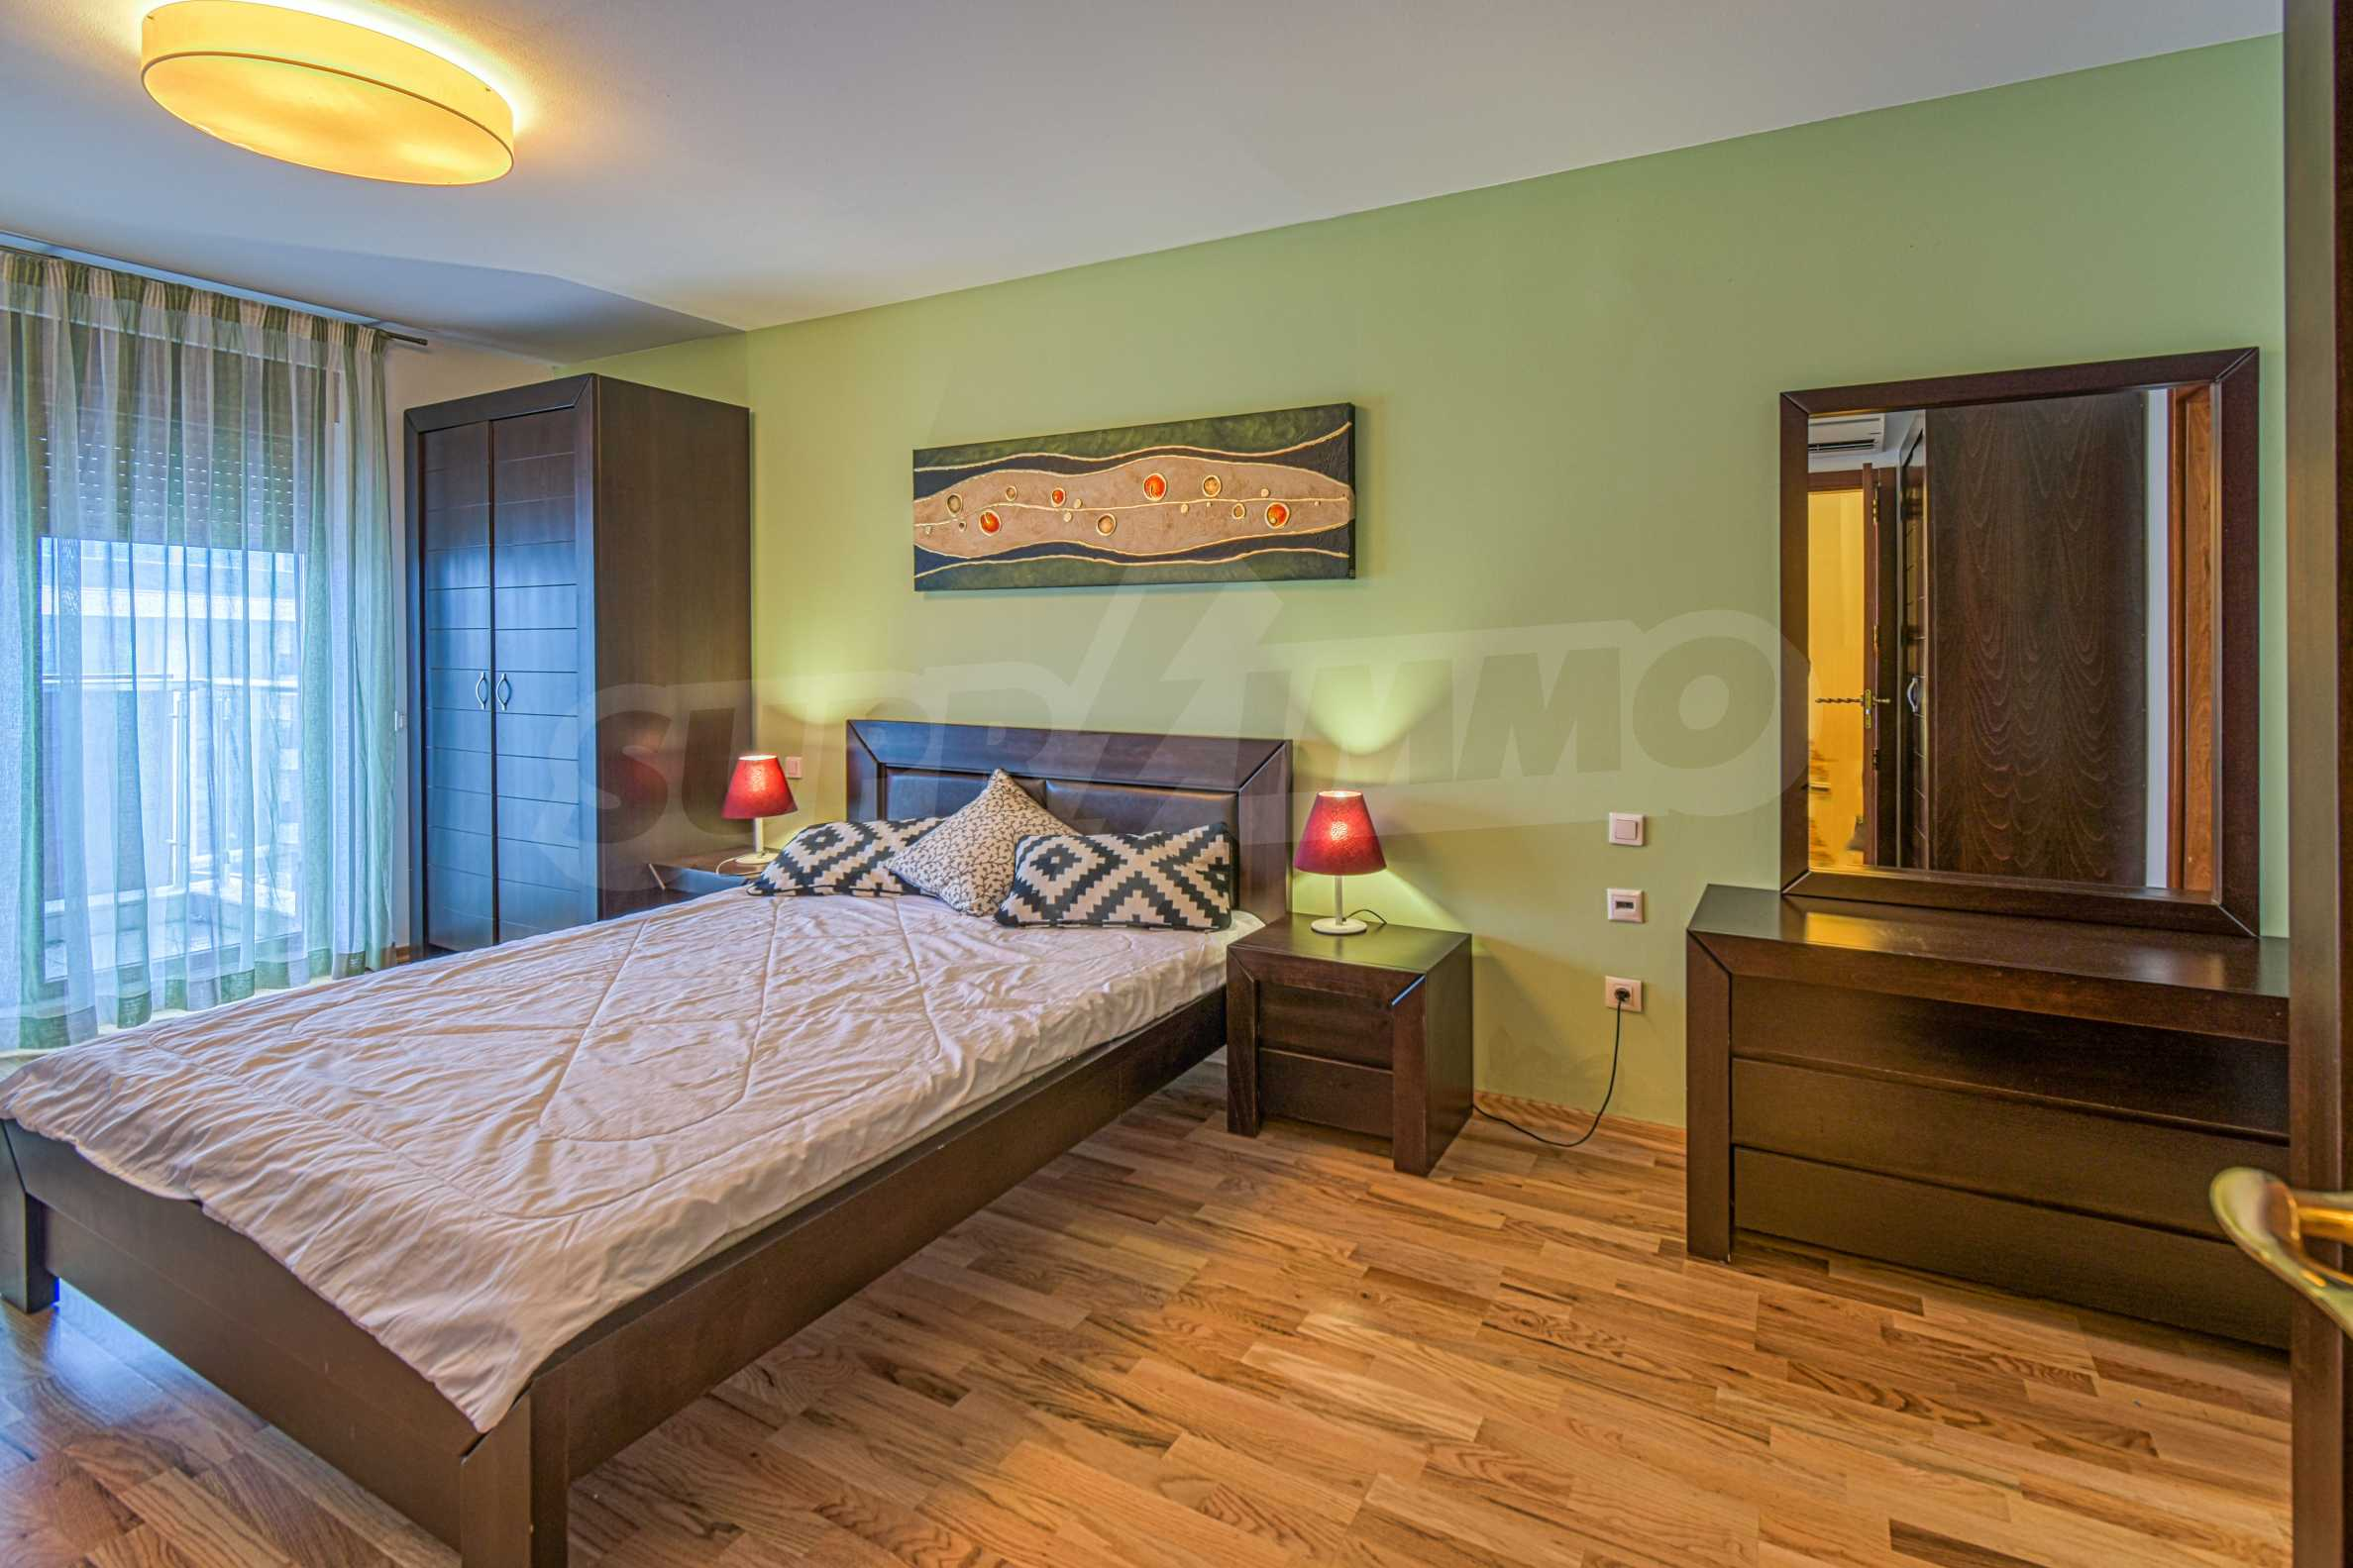 Luxurious and fully furnished two-bedroom apartment in a gated complex at the foot of Vitosha Mountain 10